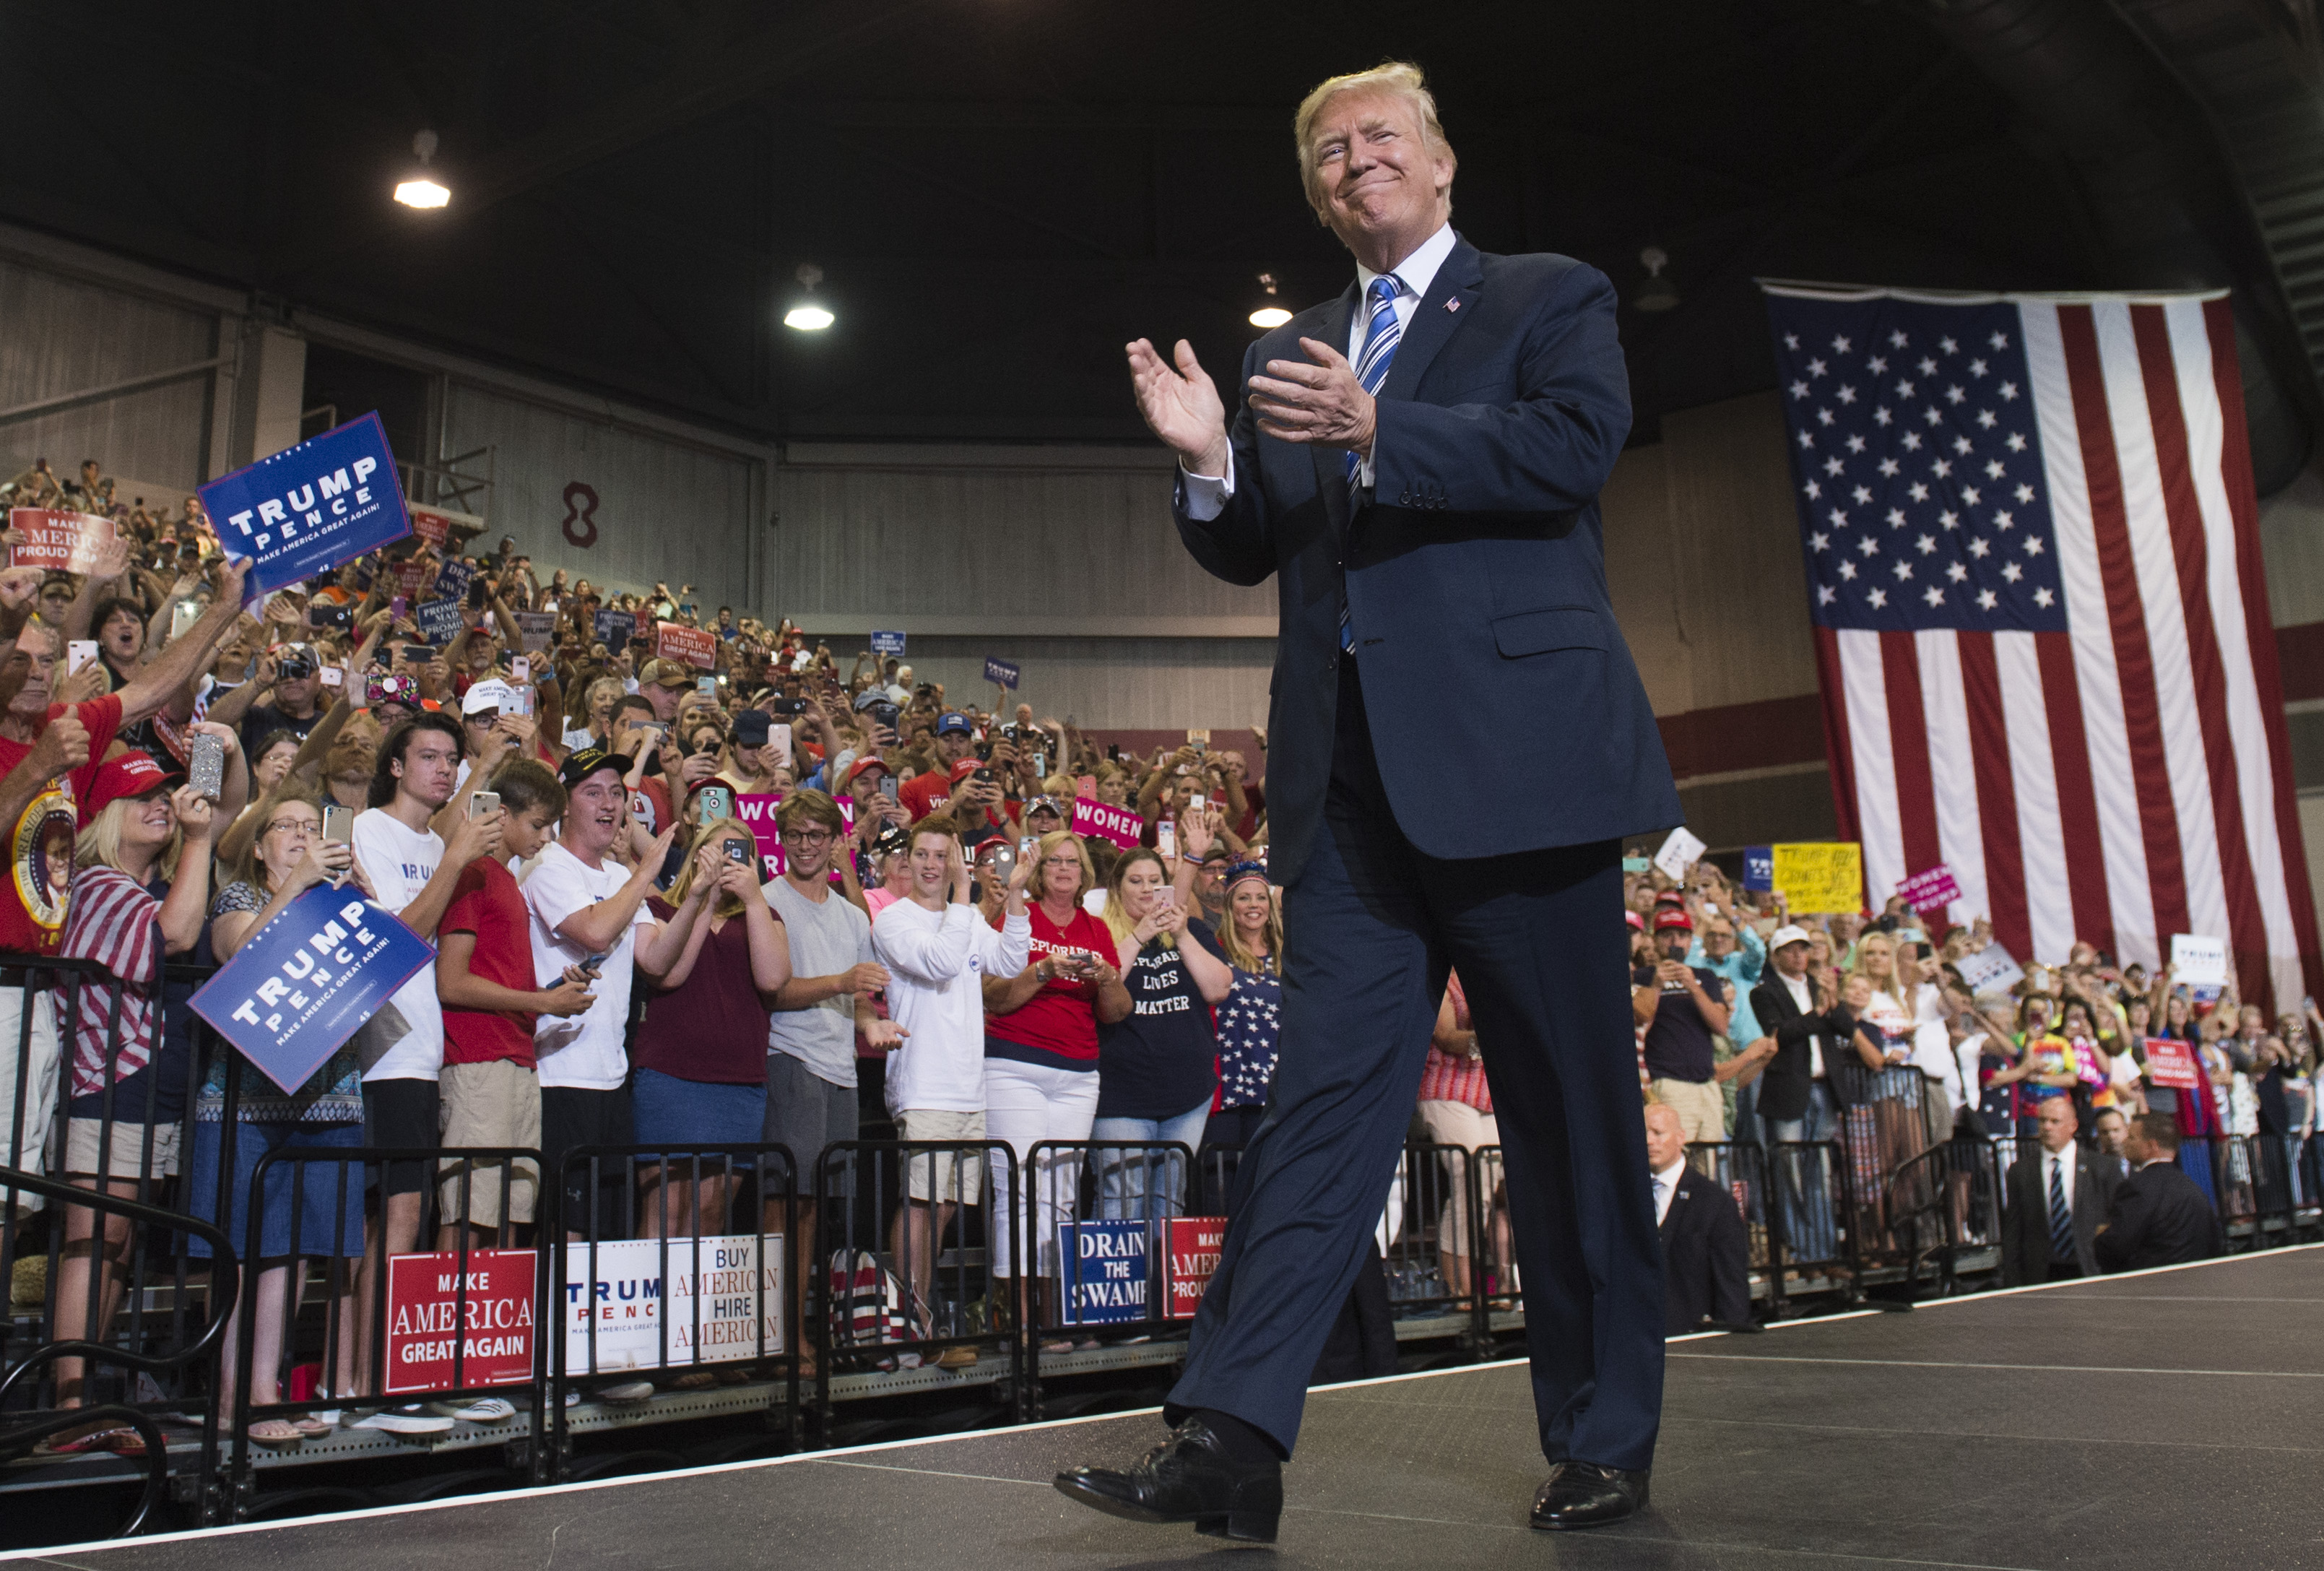 U.S. President Donald Trump arrives to speak at a Make America Great Again Rally at Big Sandy Superstore Arena in Huntington, West Virginia, August 3, 2017.